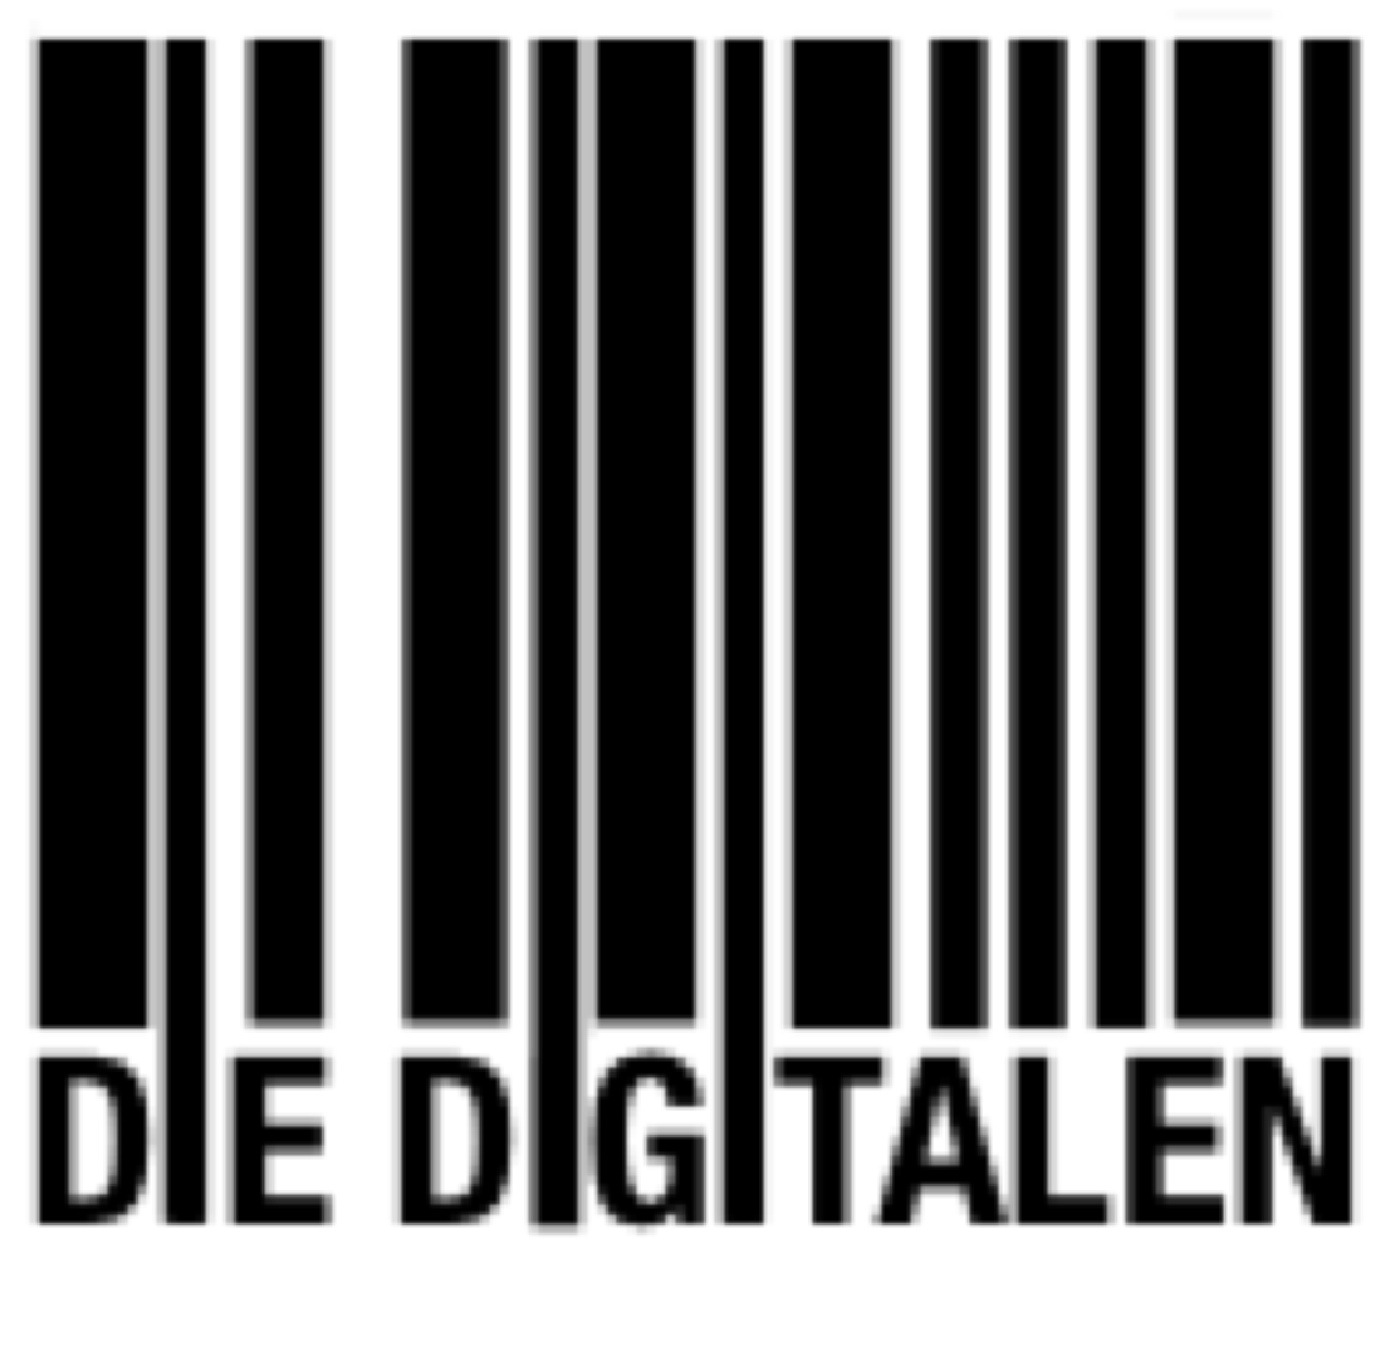 Die Digitalen